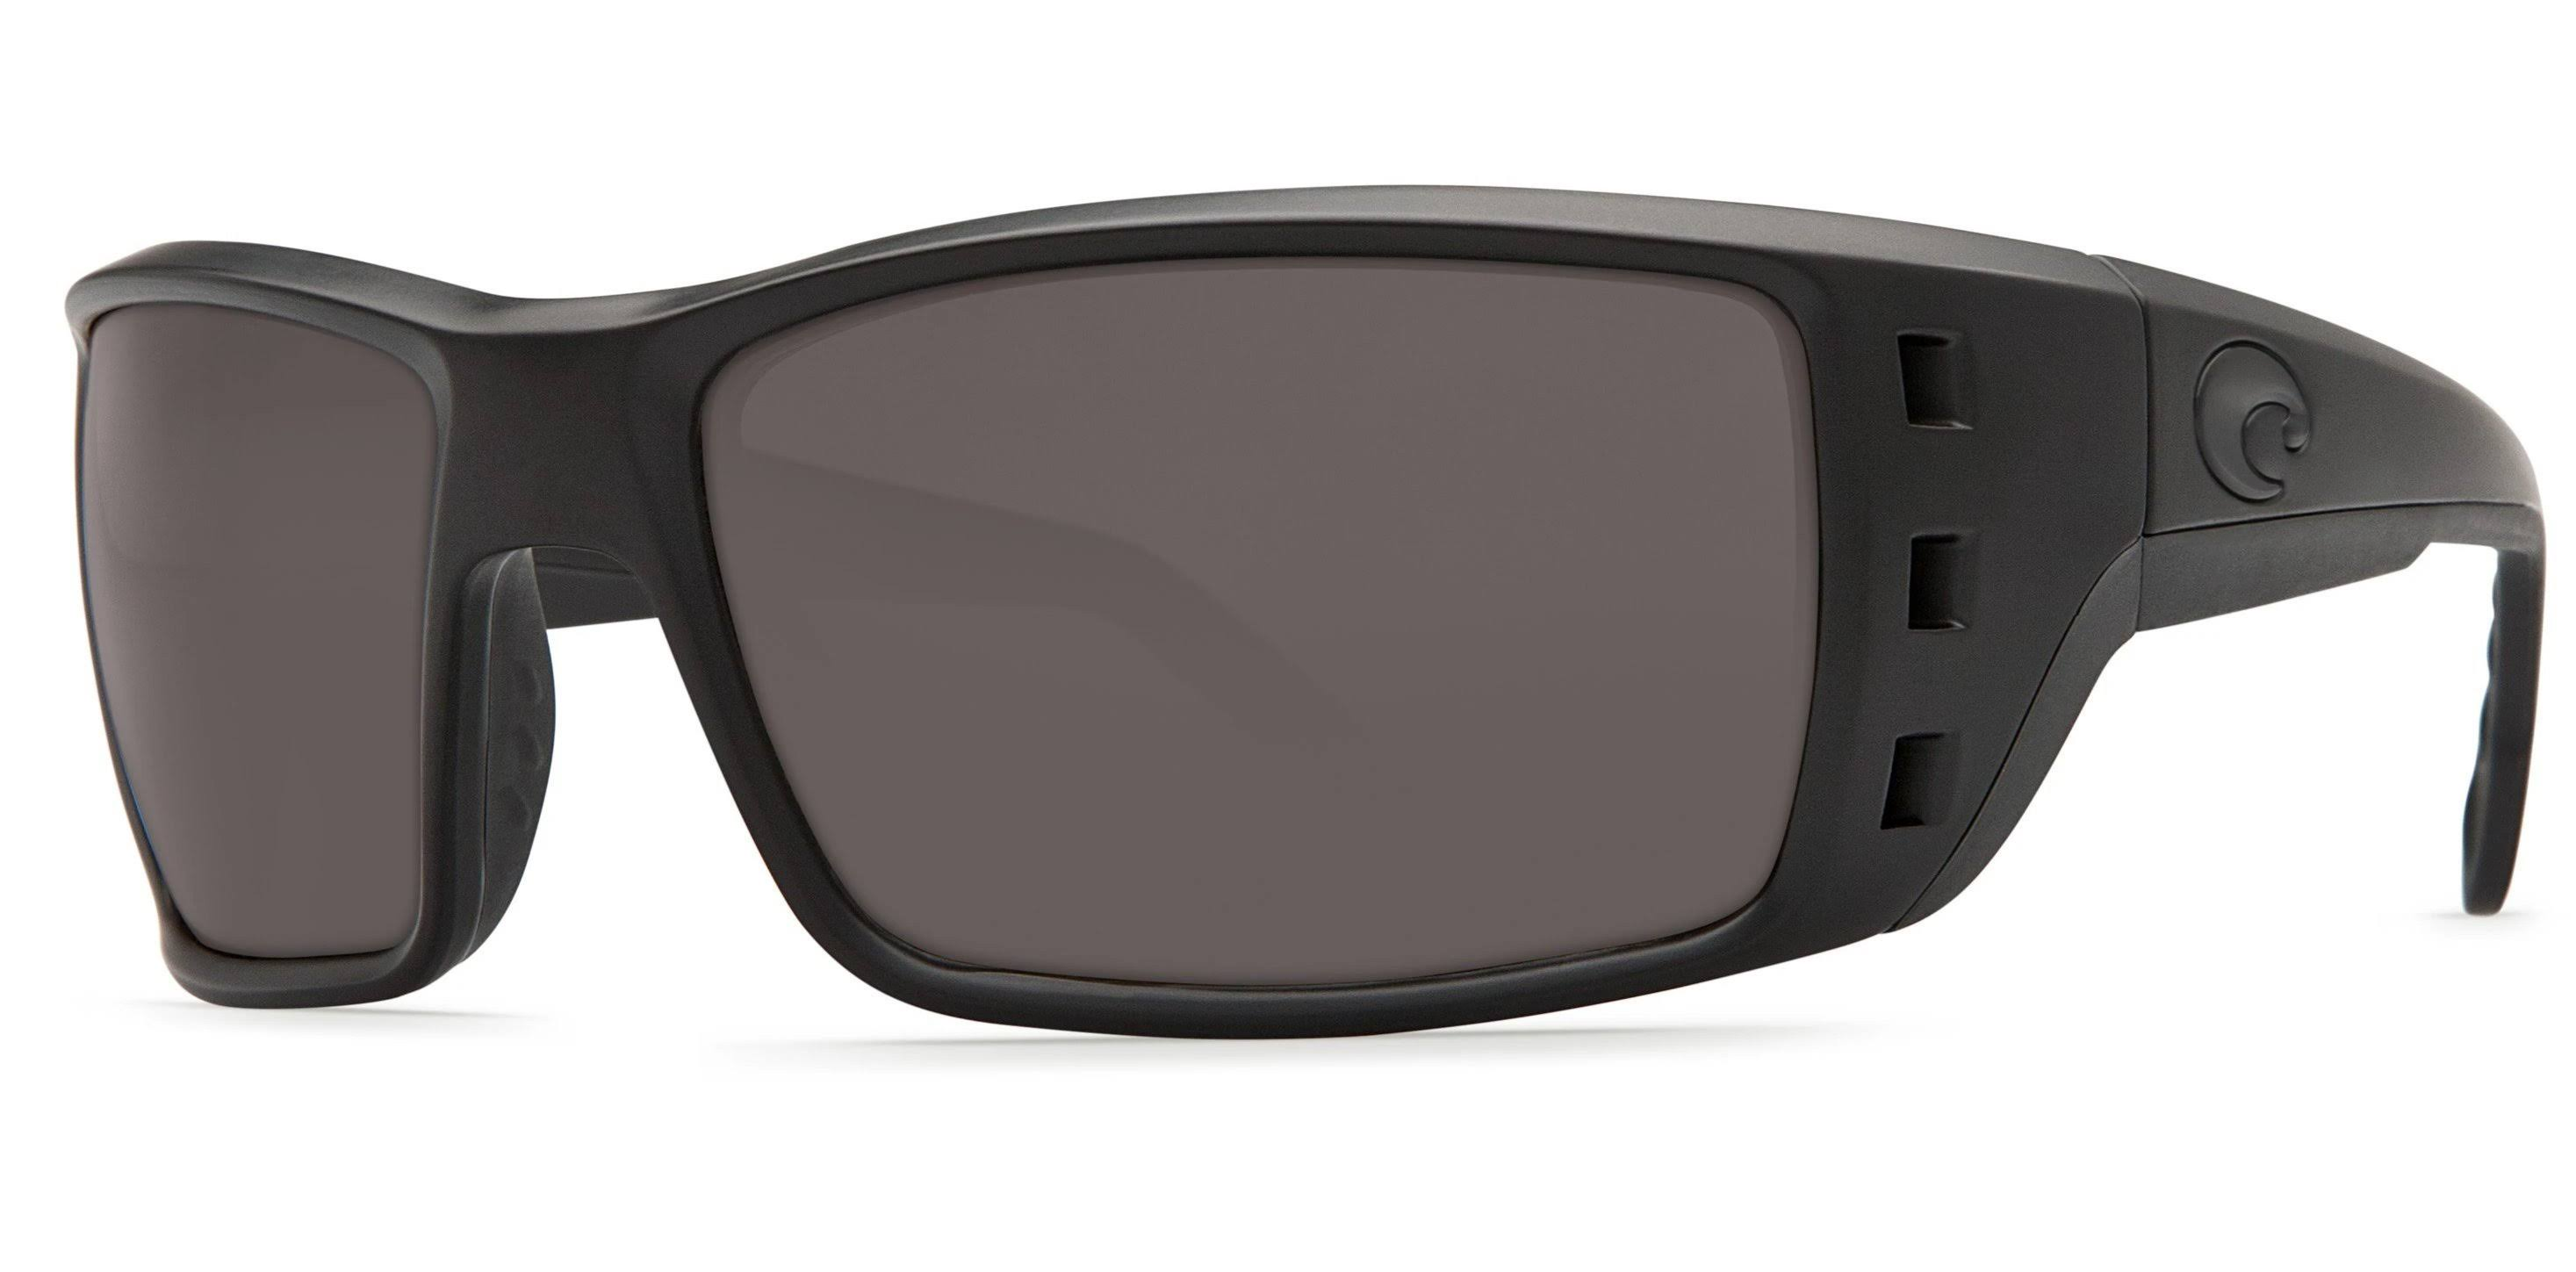 Costa Del Mar Permit PT 01 Blackout Rectangular Sunglasses - Grey, 115mm